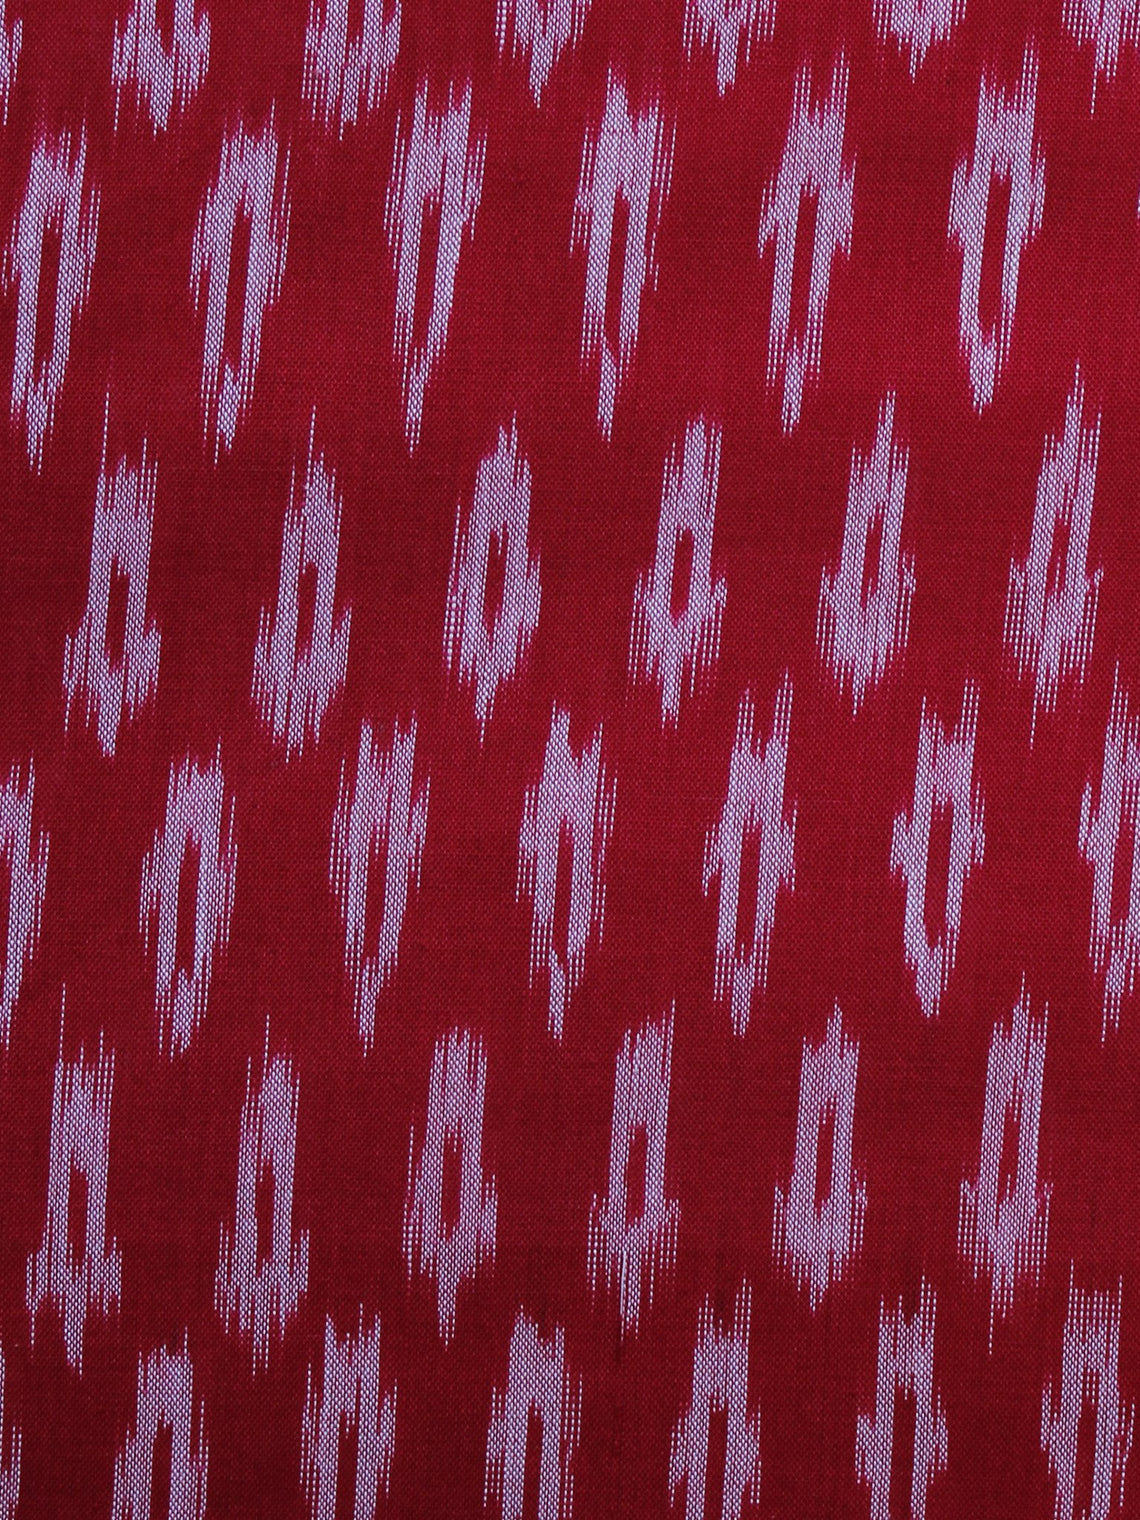 Red Pink Pochampally Hand Weaved Ikat Mercerised Fabric Per Meter - F003F1280